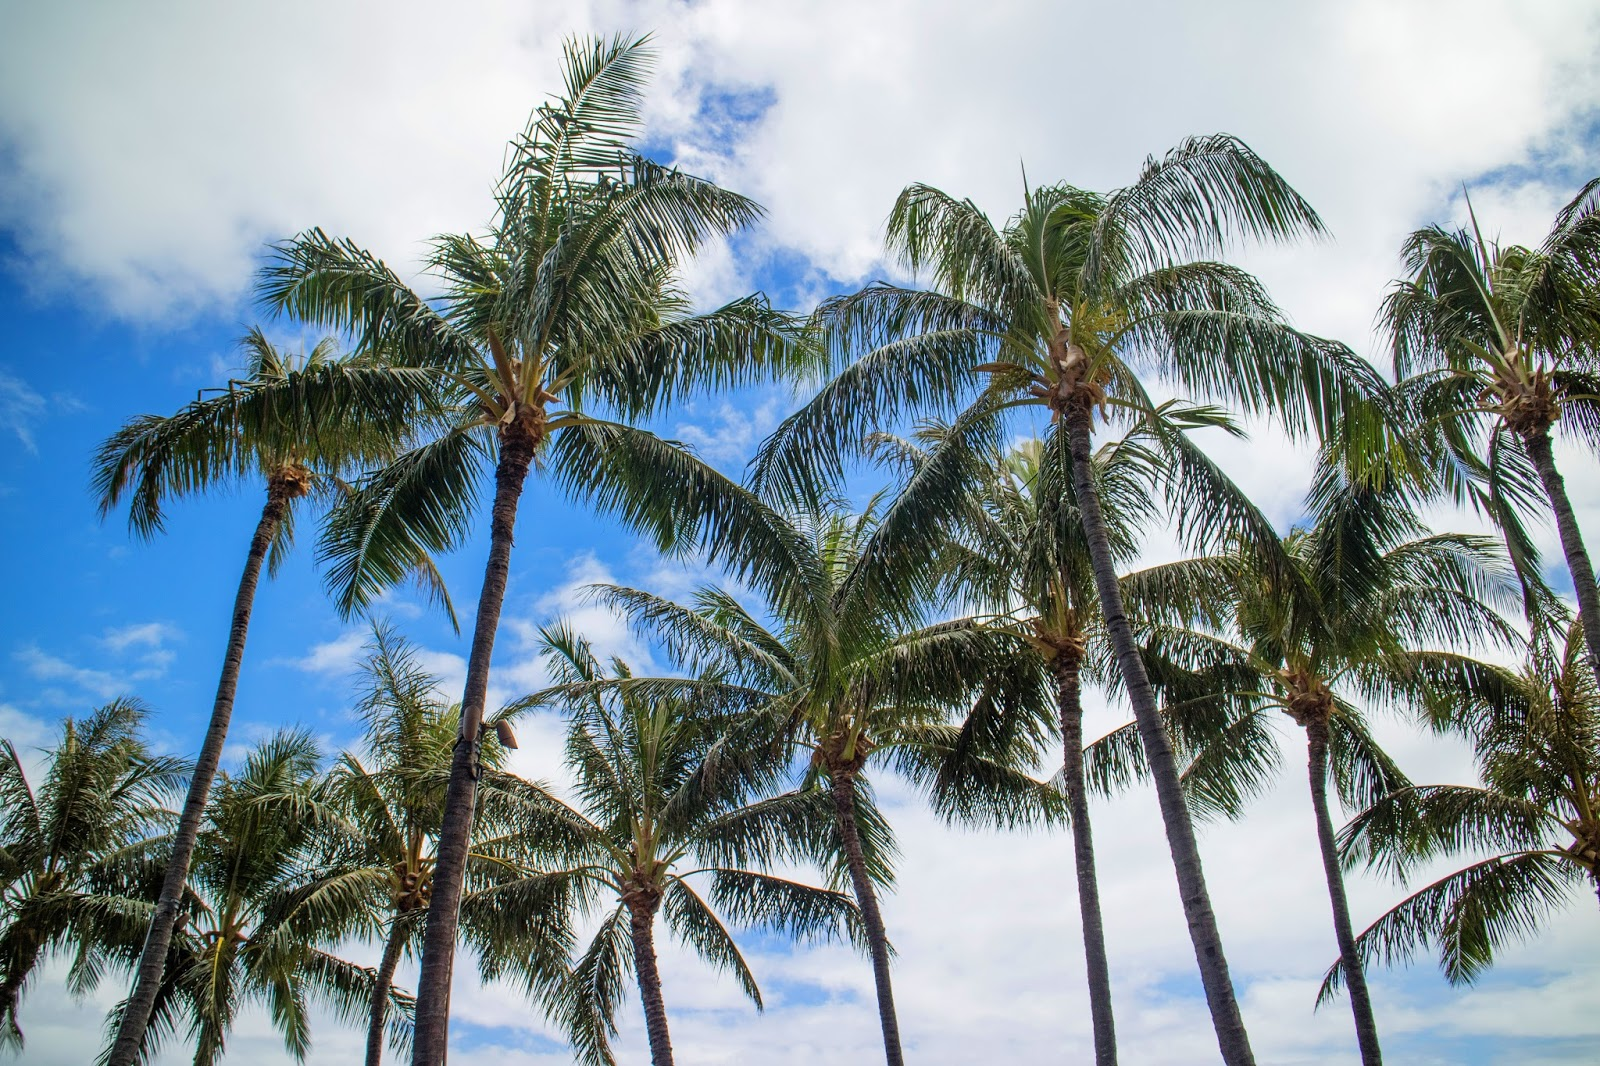 Palm trees on Oahu, hawaii